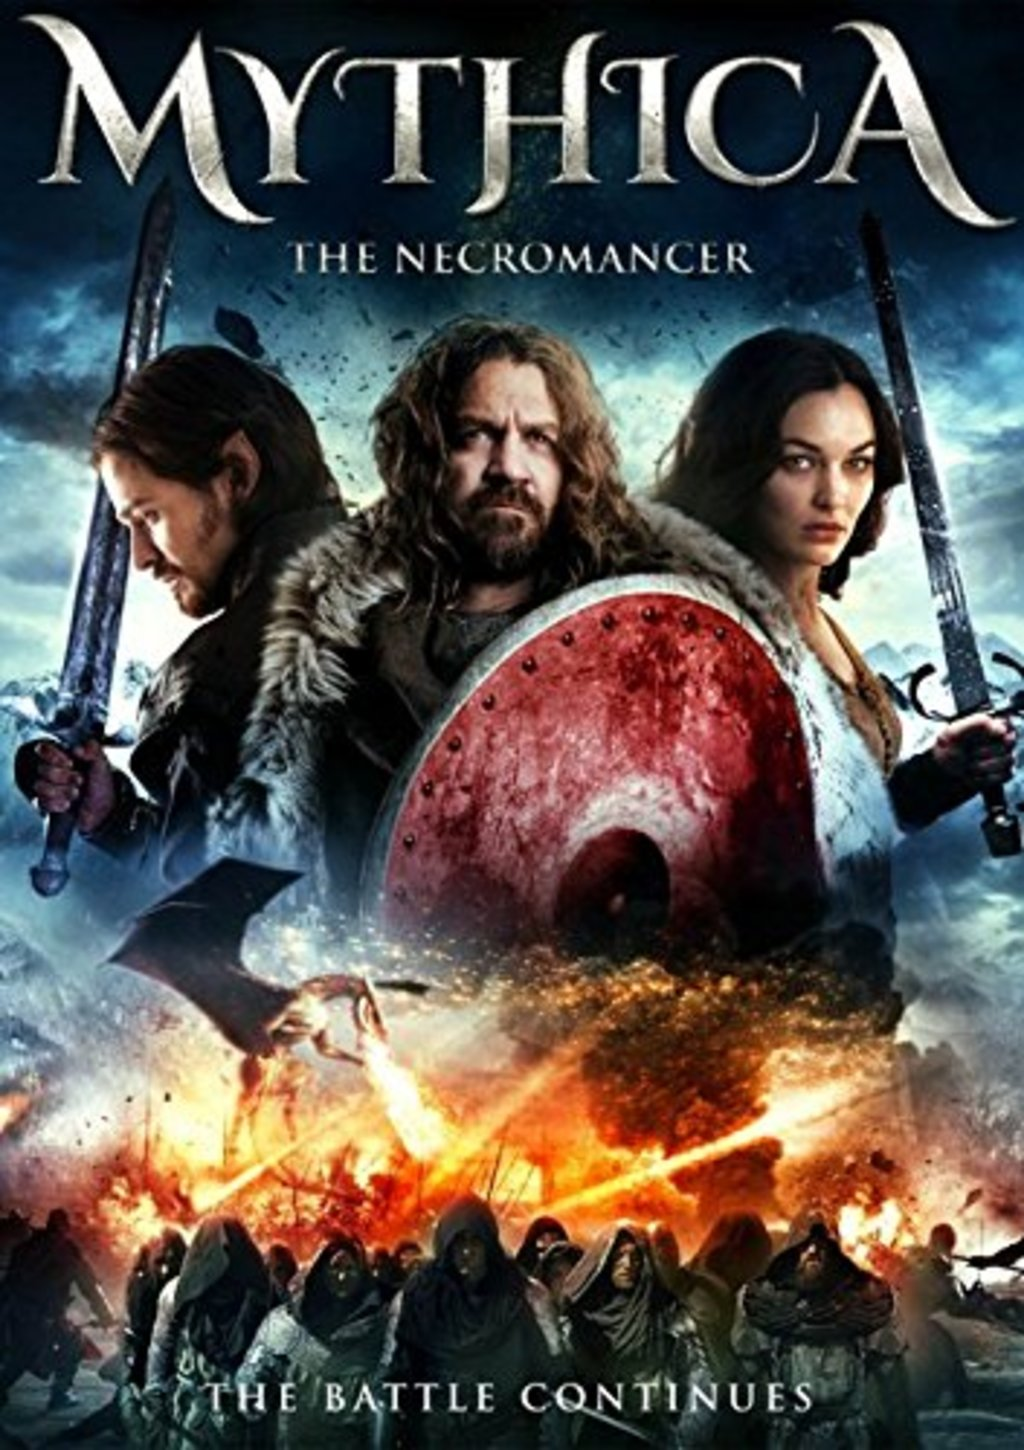 watch mythica the necromancer on netflix today